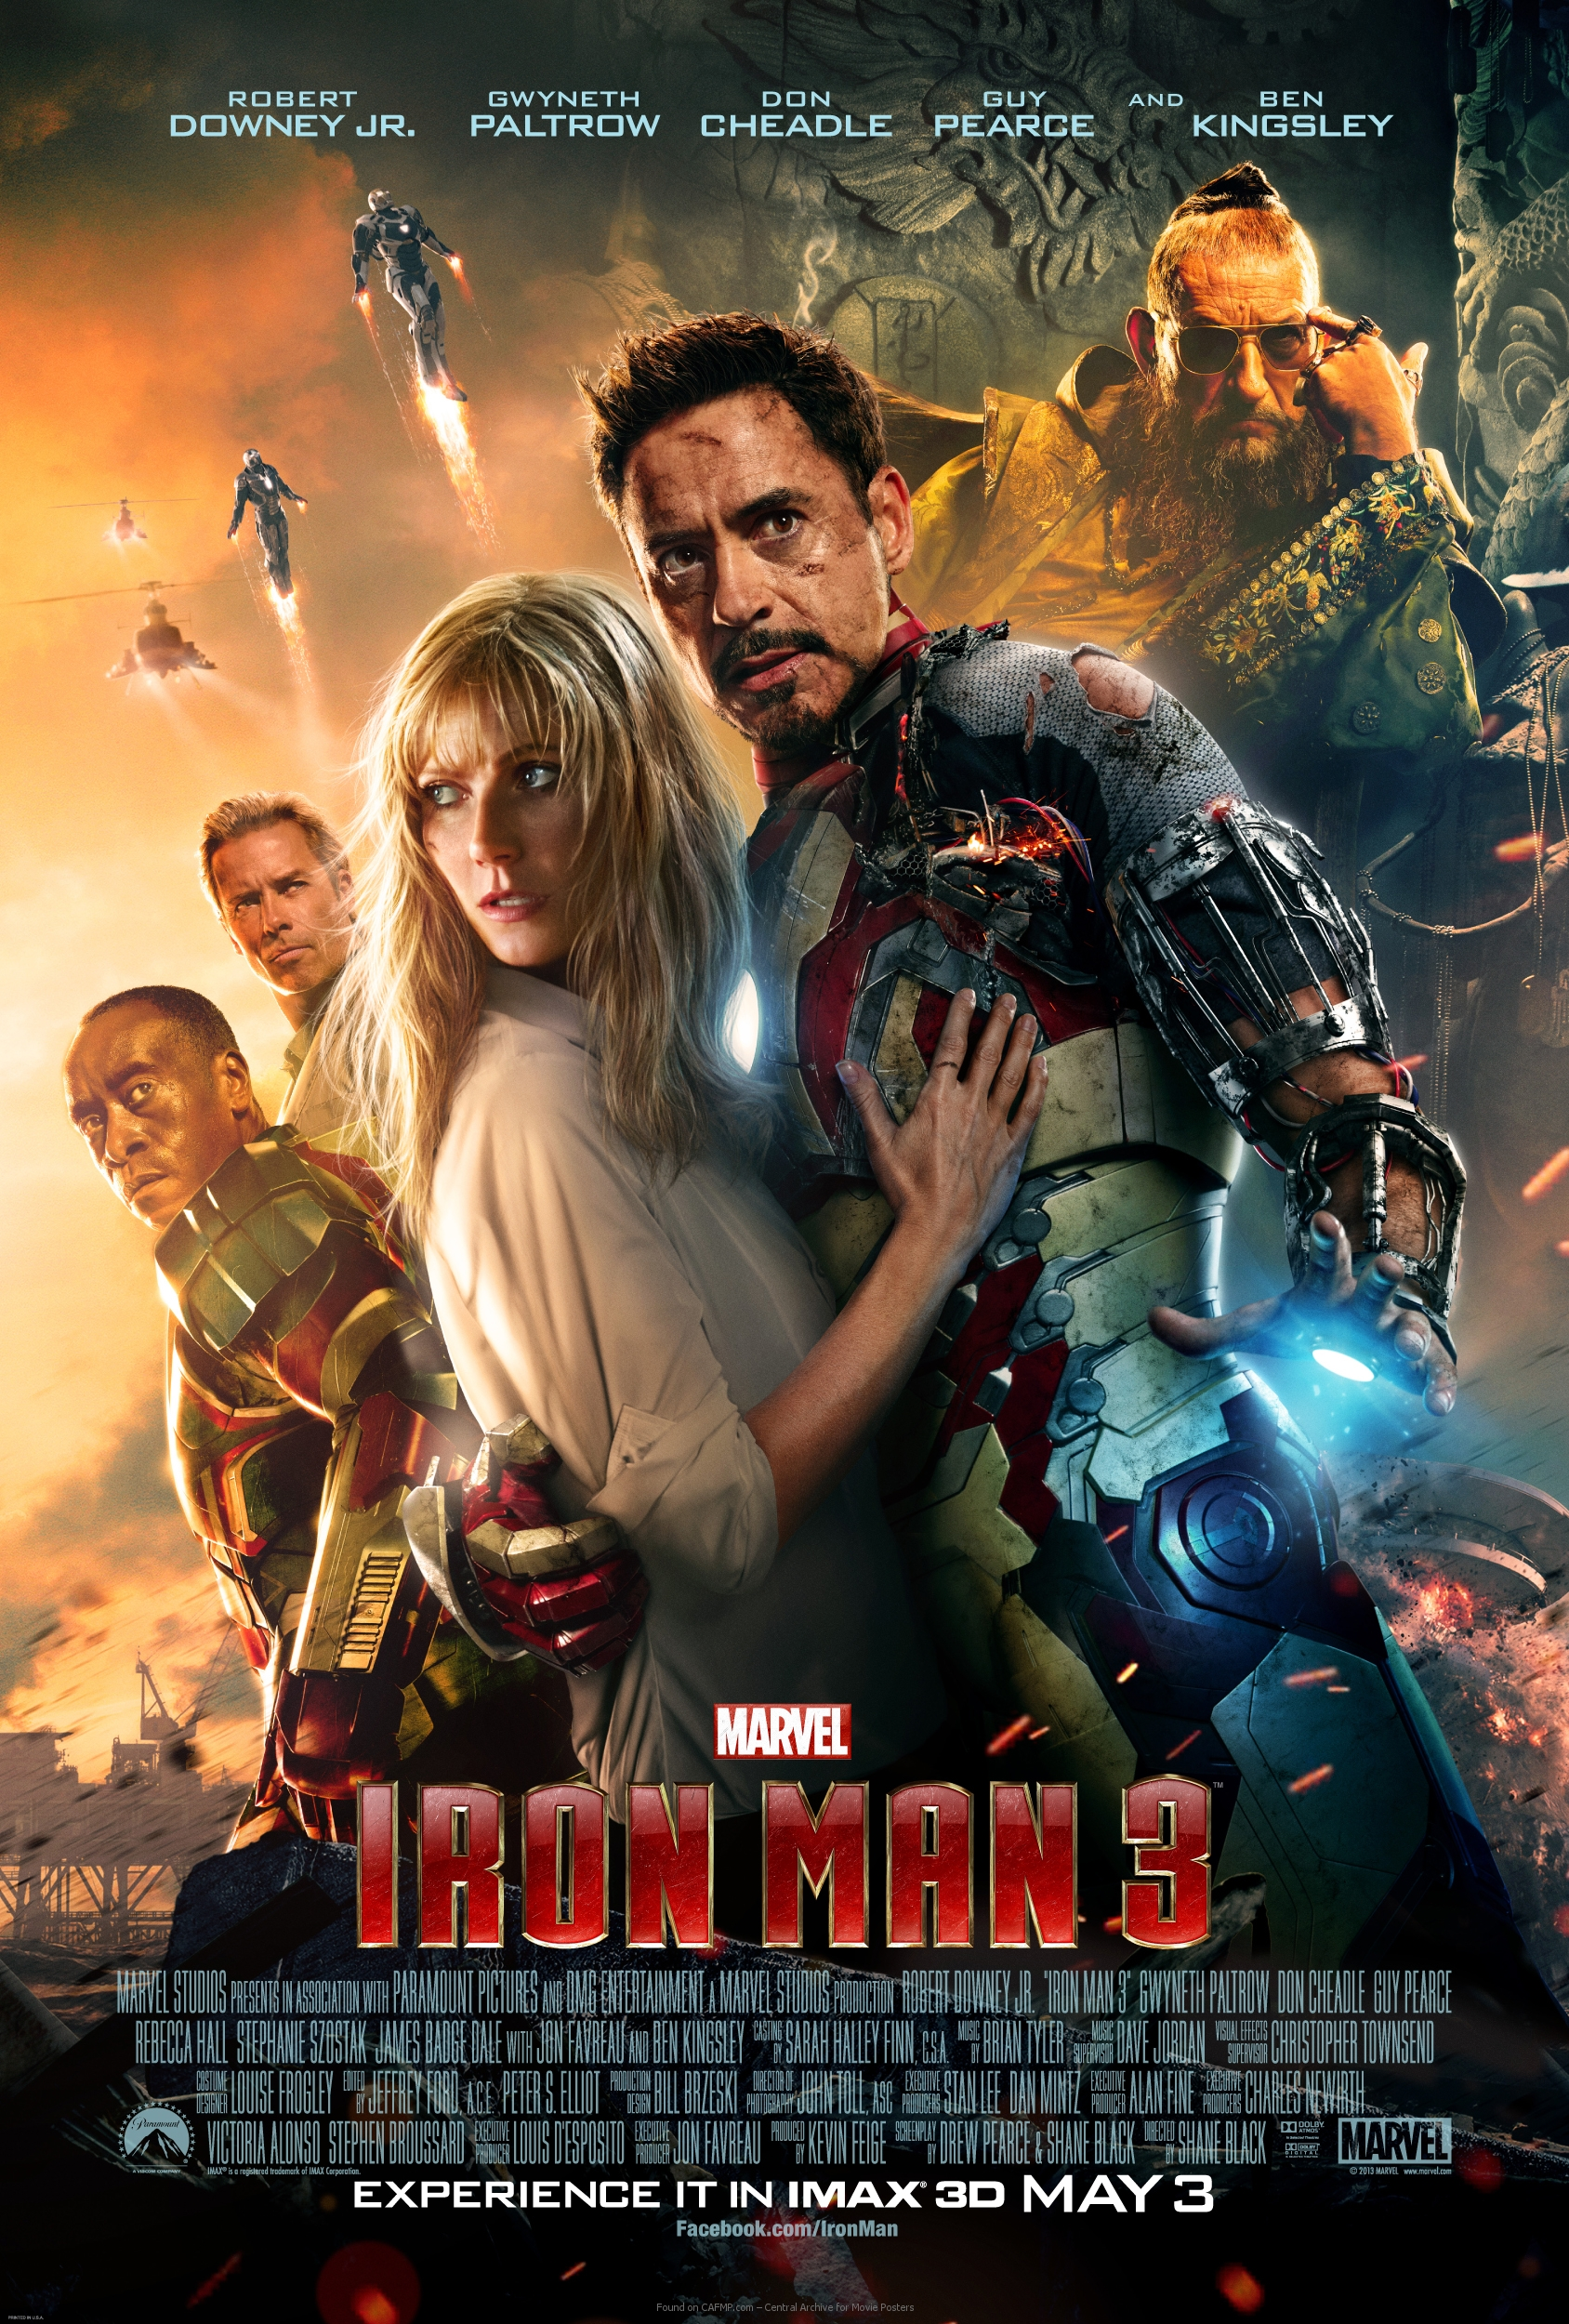 Iron Man 1 Hd Movie Download In Hindi